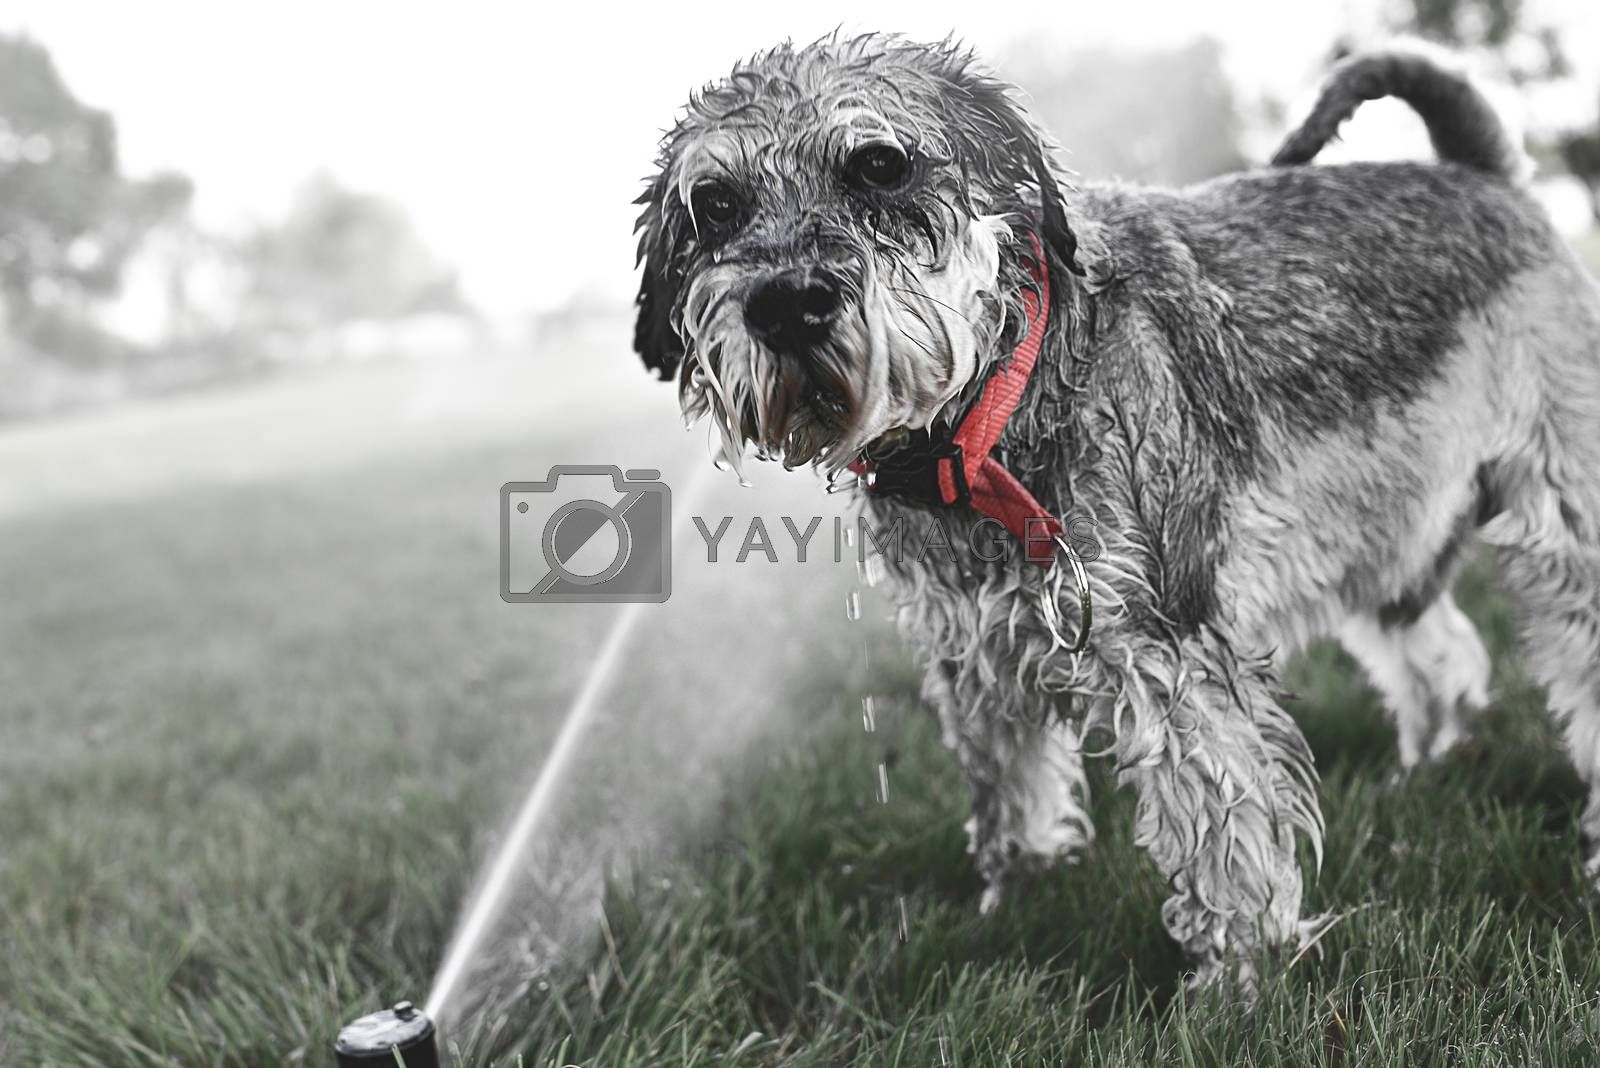 Wet happy pet schnauzer dog puppy playing with water, drinking from sprinkler in a hot day